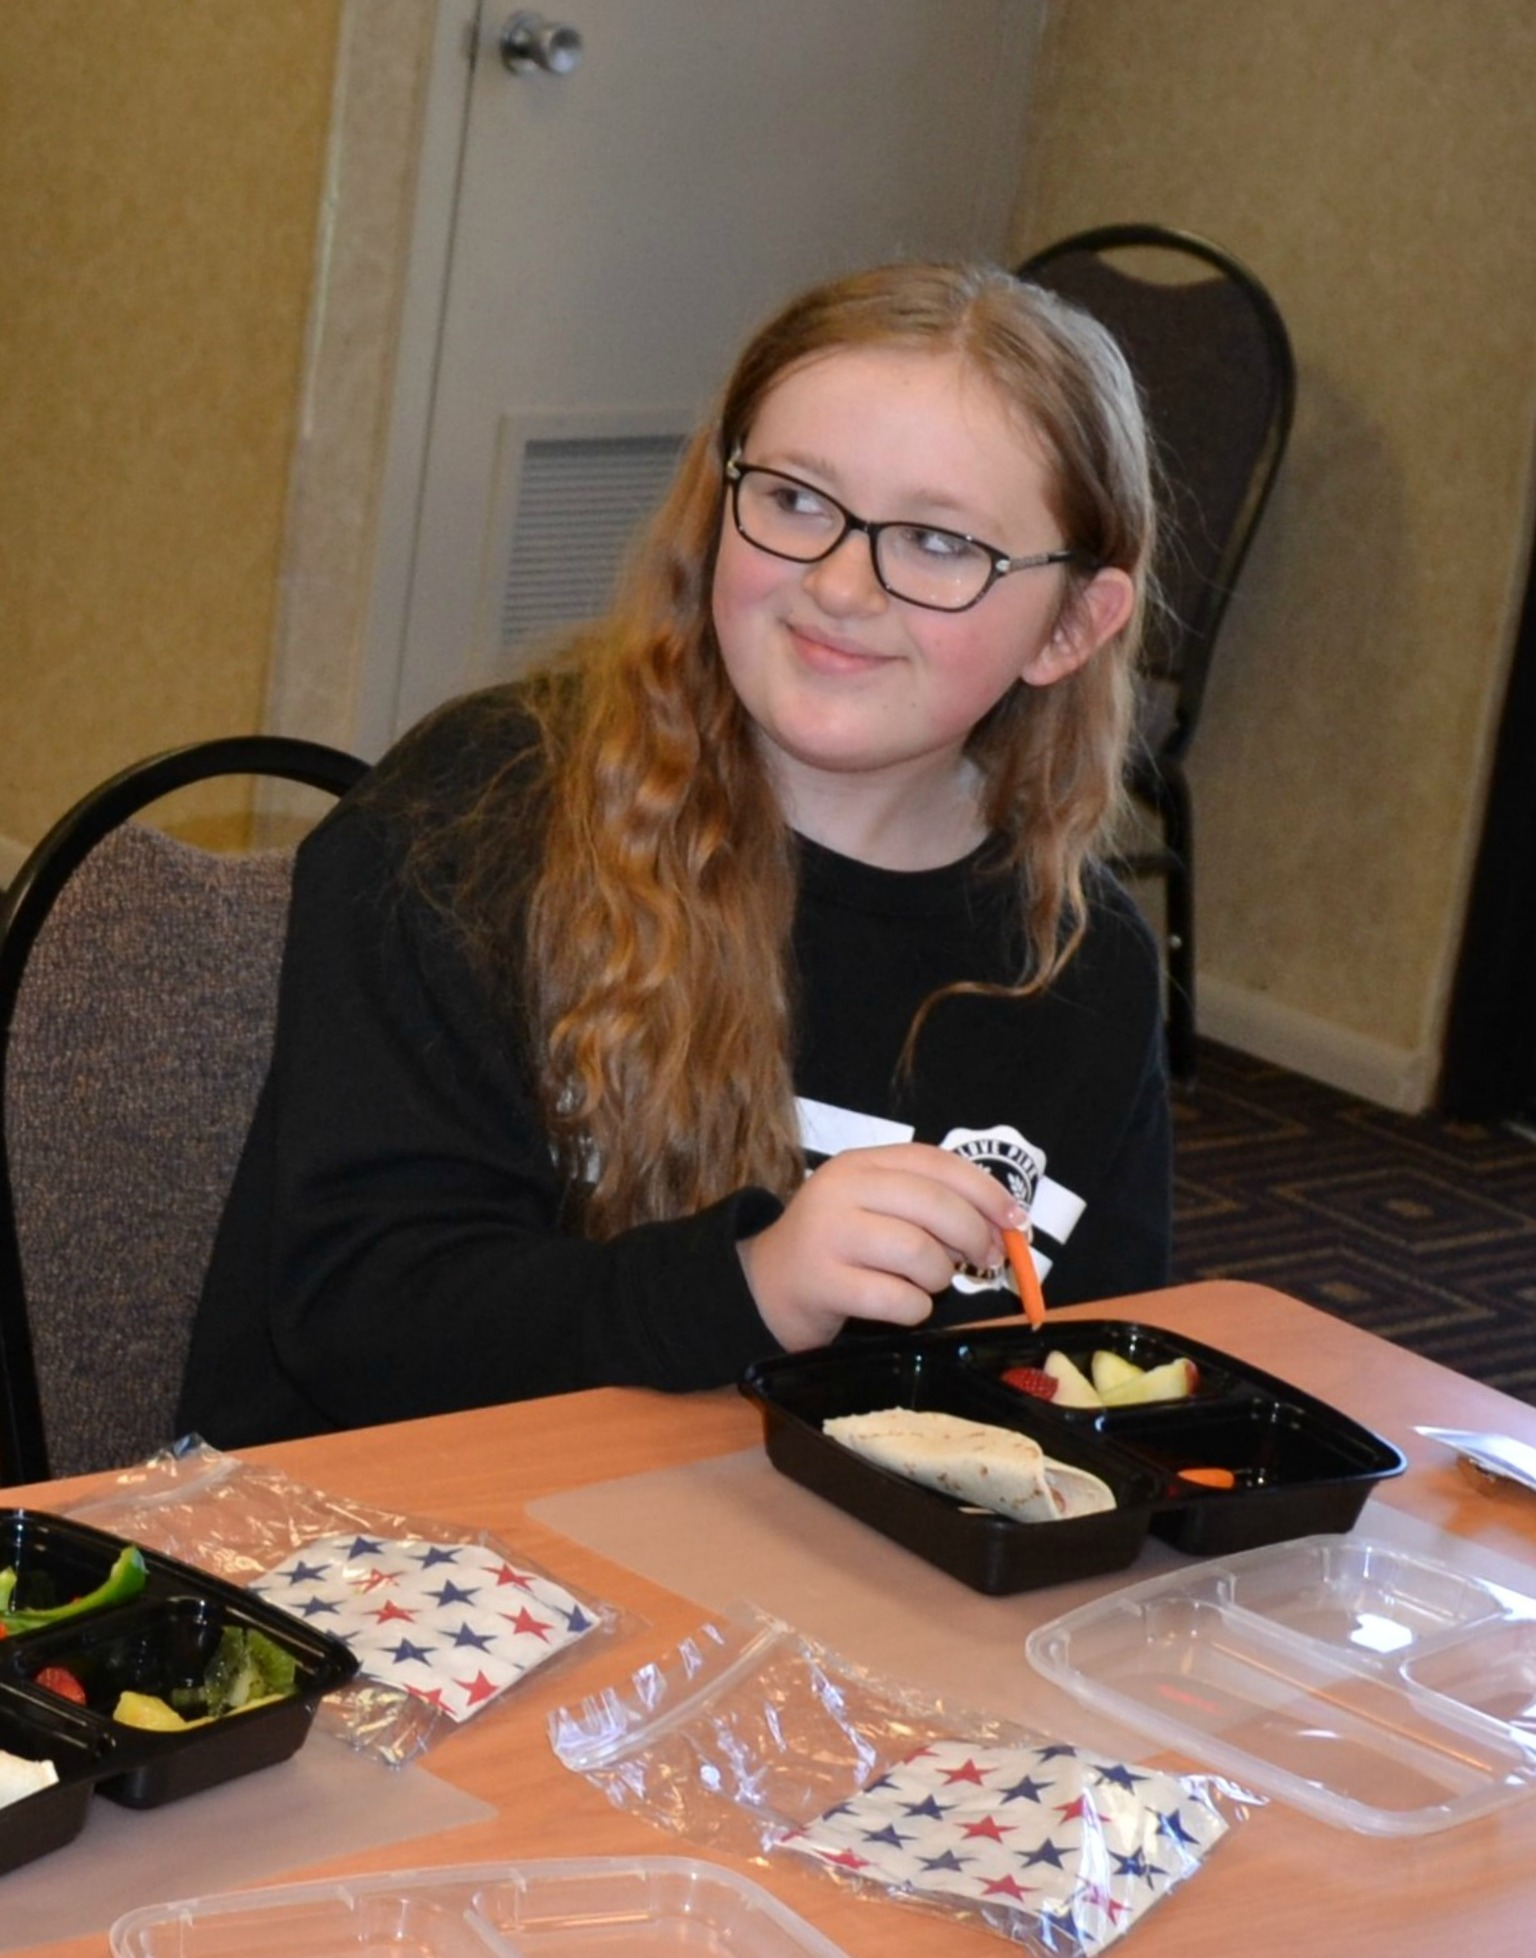 Tips on a Healthy Snack Workshop for kids that I presented at the WV State PTA Convention.